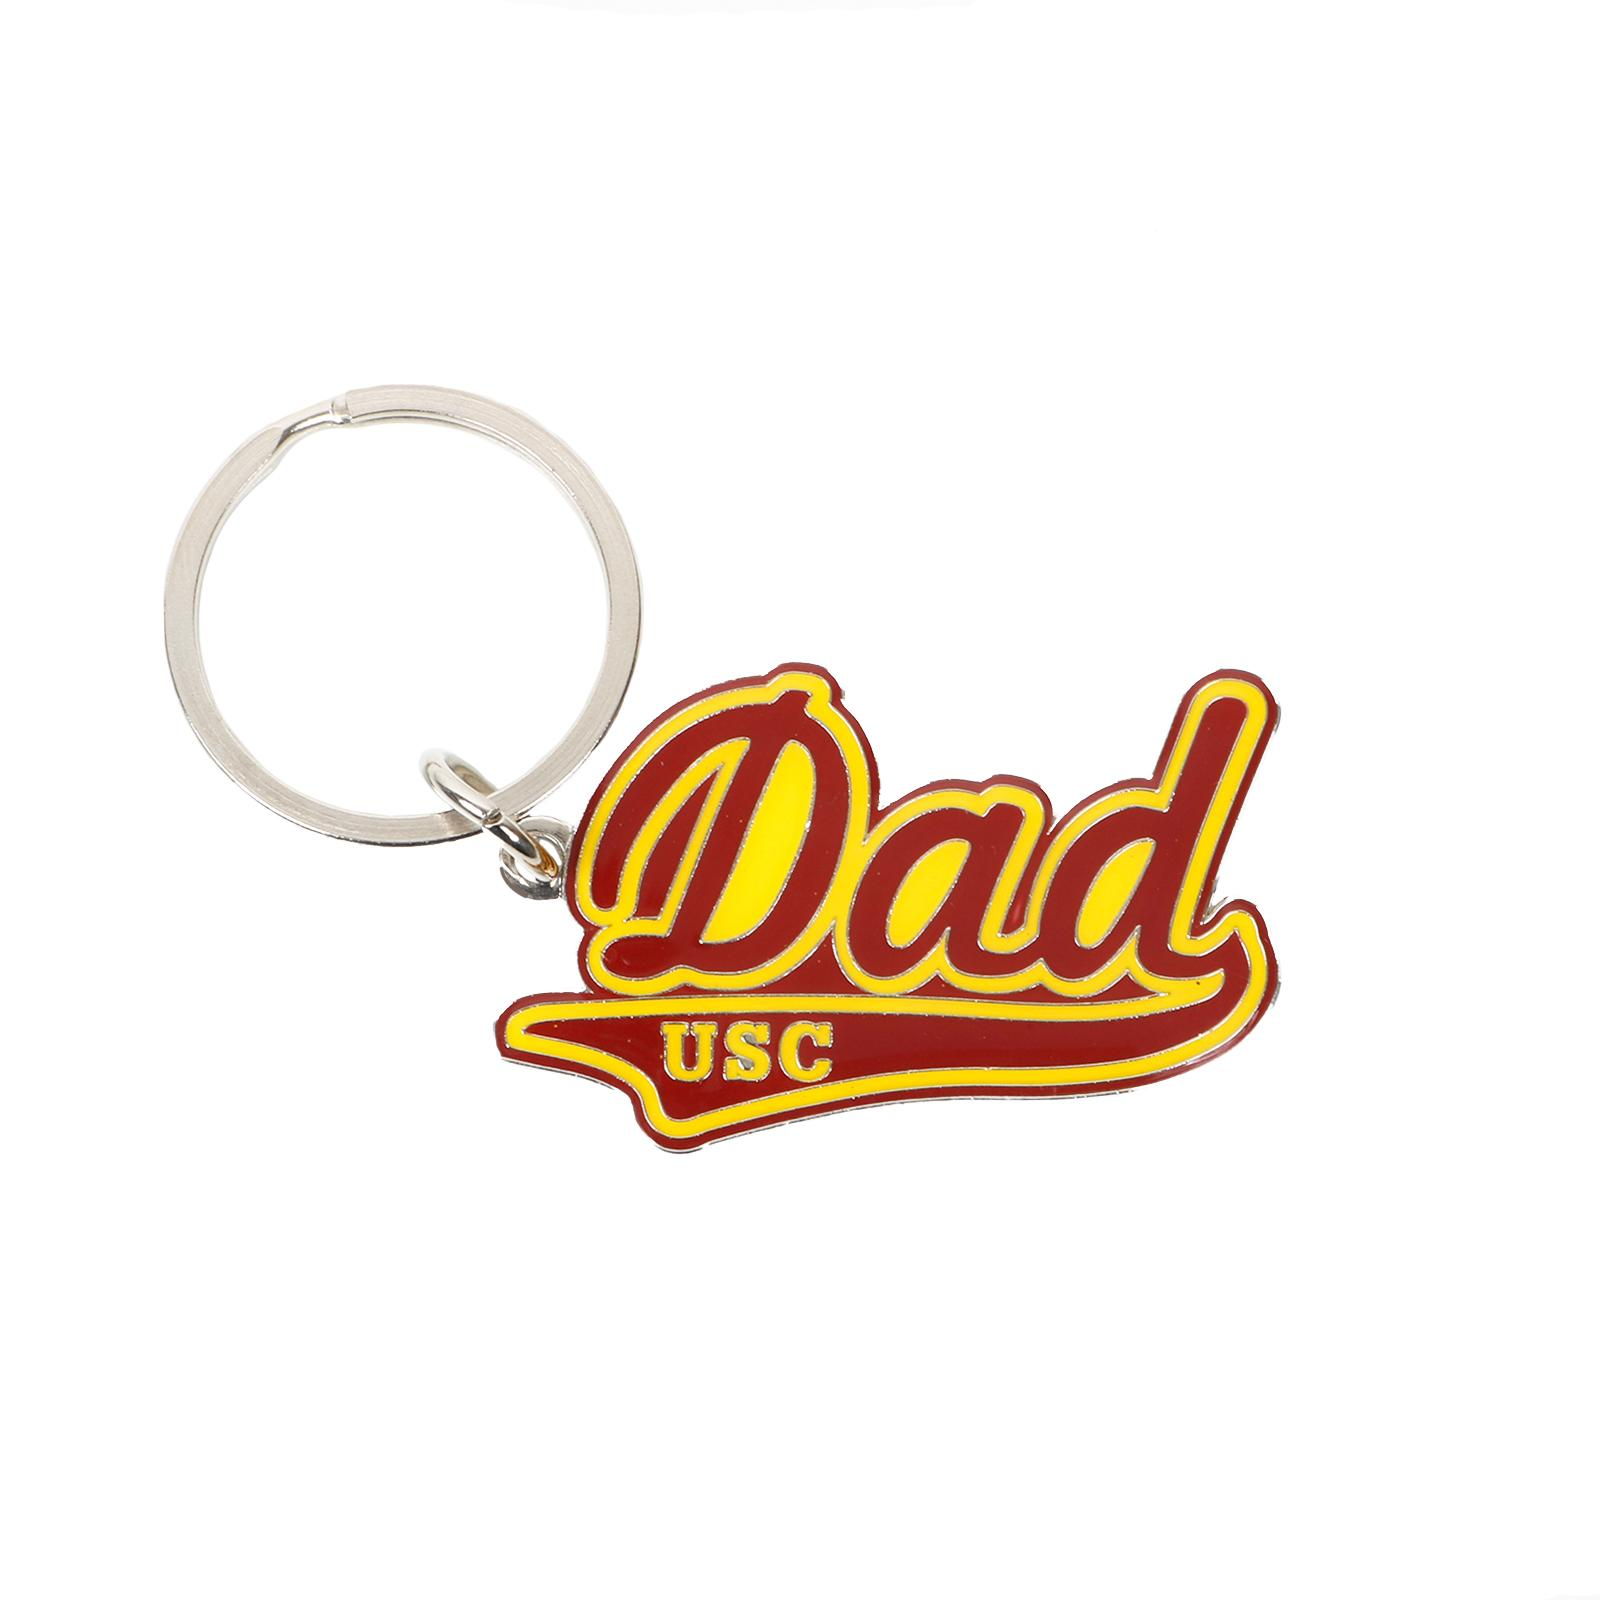 USC Dad Brass Key Chain